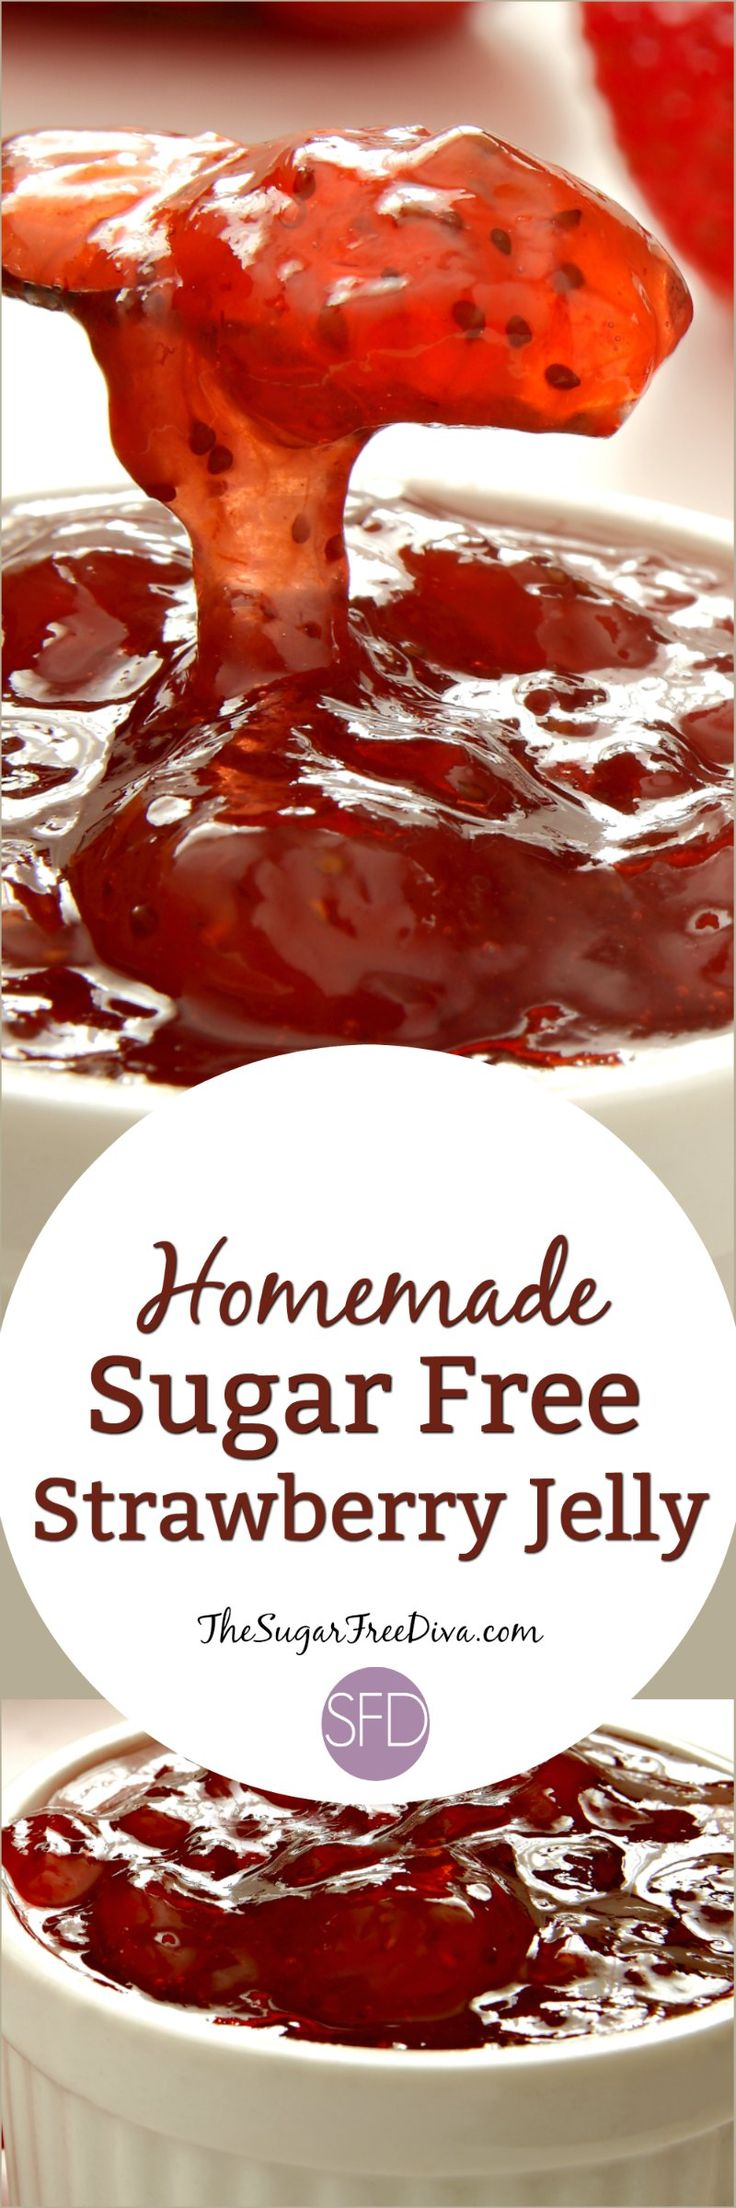 Homemade Sugar Free Strawberry Jelly- wow this recipe is so easy to make and it is sugar free!!